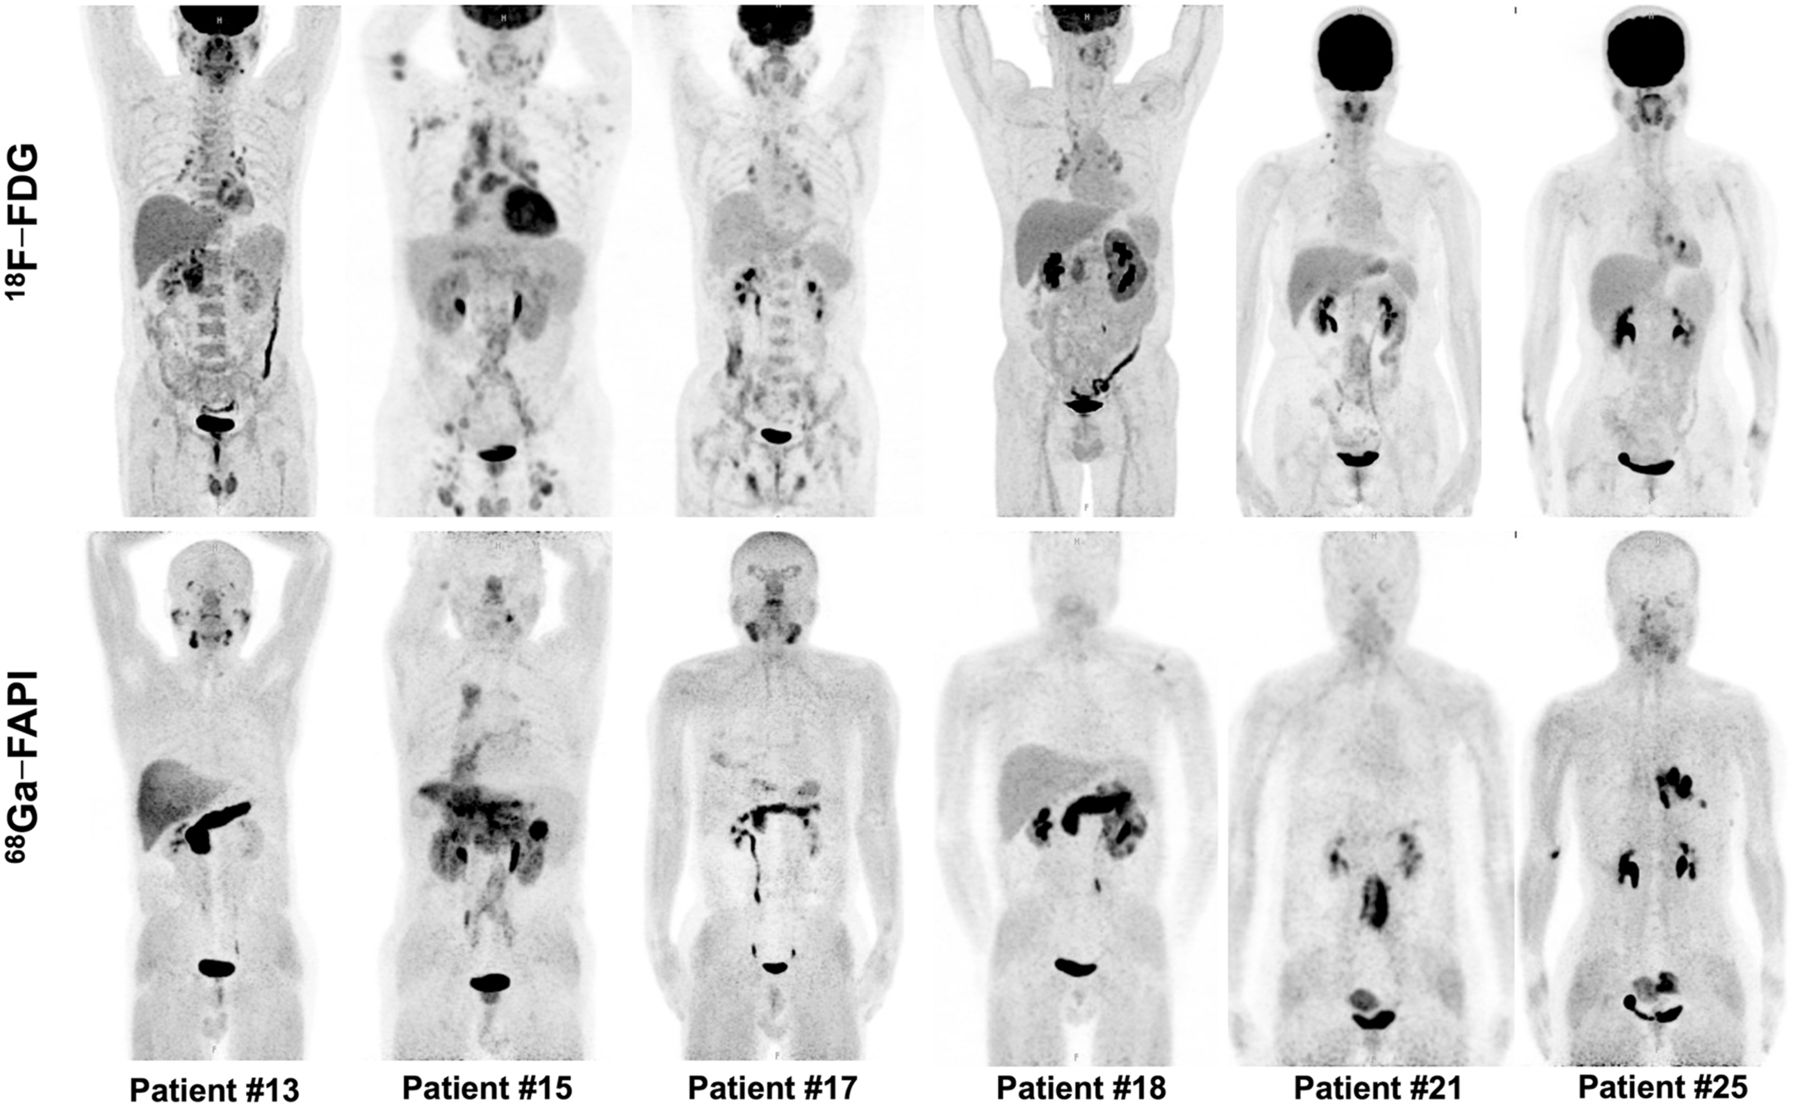 Fibroblast Activation Protein–Targeted PET/CT with 68Ga-FAPI for Imaging IgG4-Related Disease: Comparison to 18F-FDG PET/CT